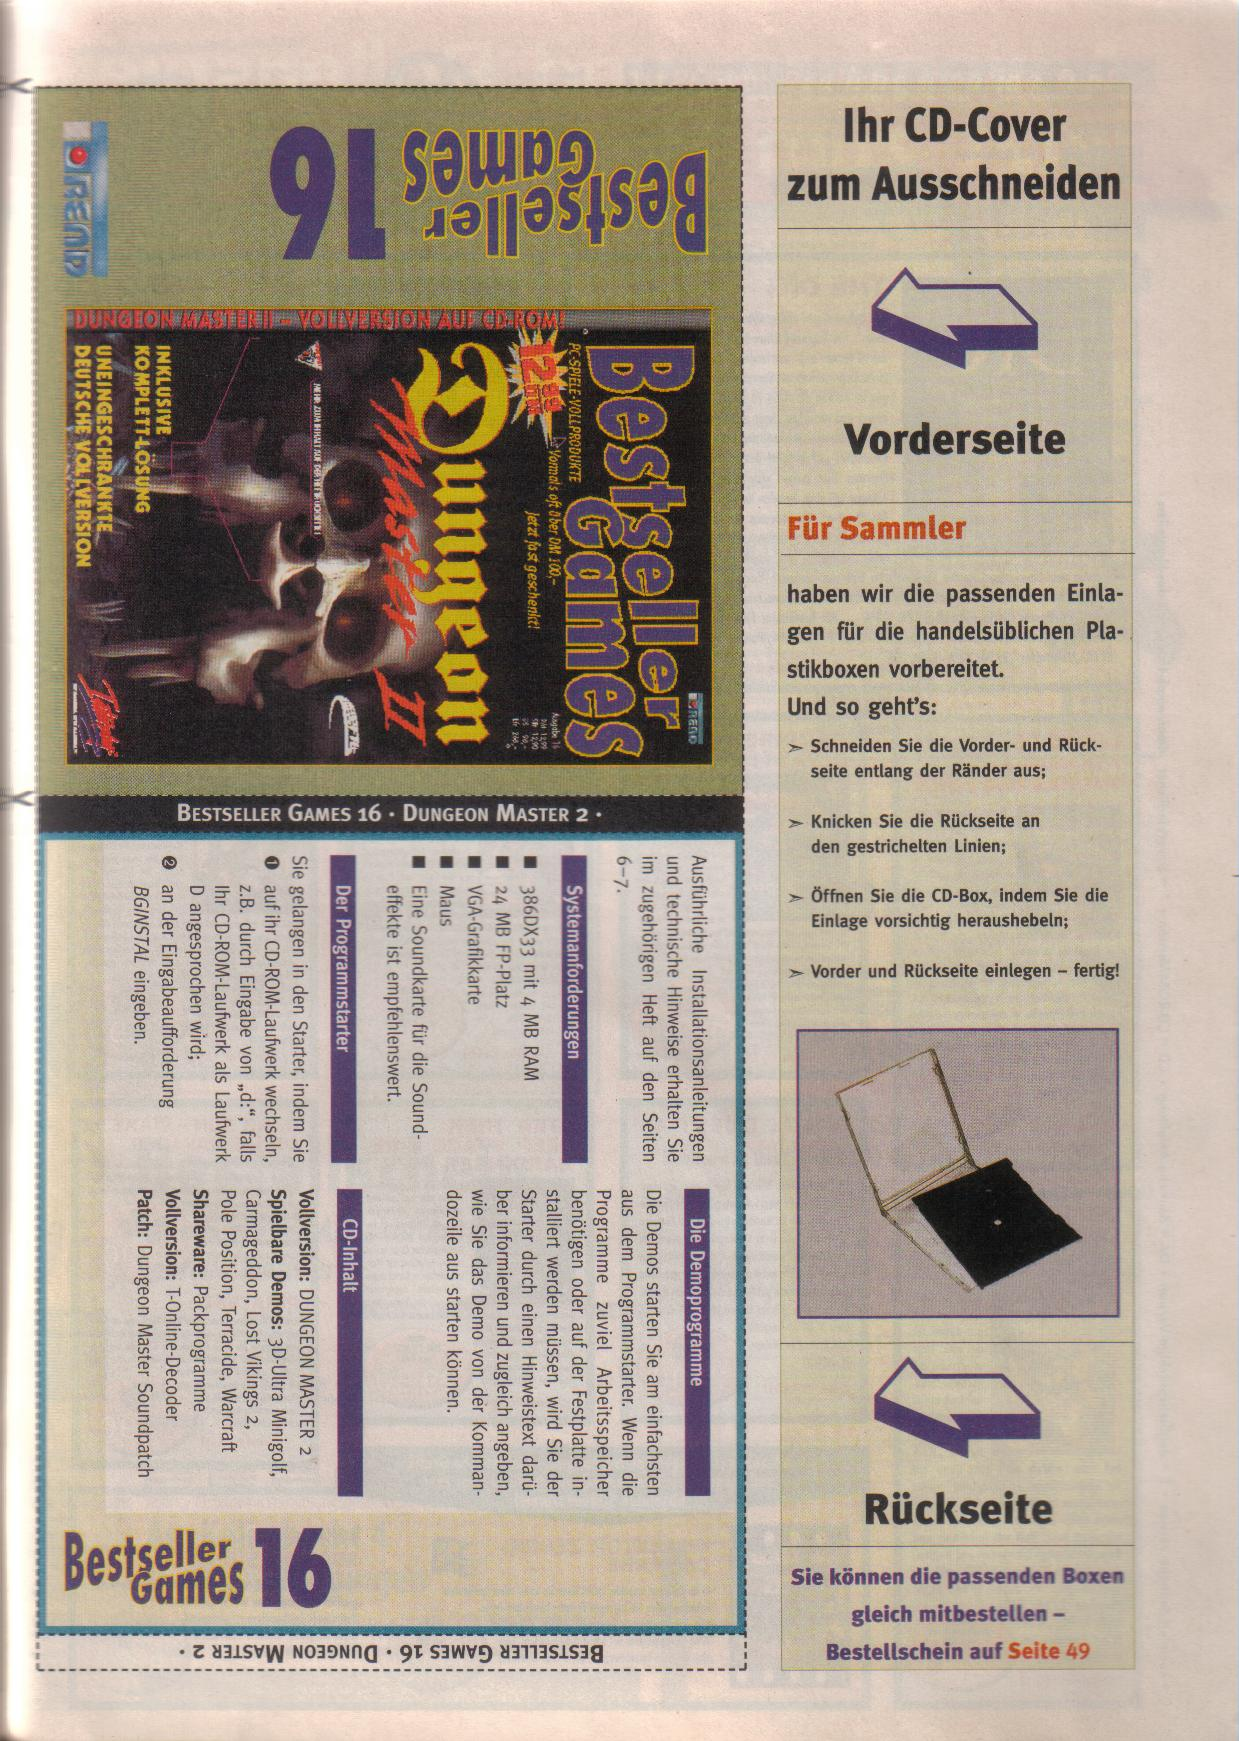 Dungeon Master II for PC (German, Best Seller Games) Page 47